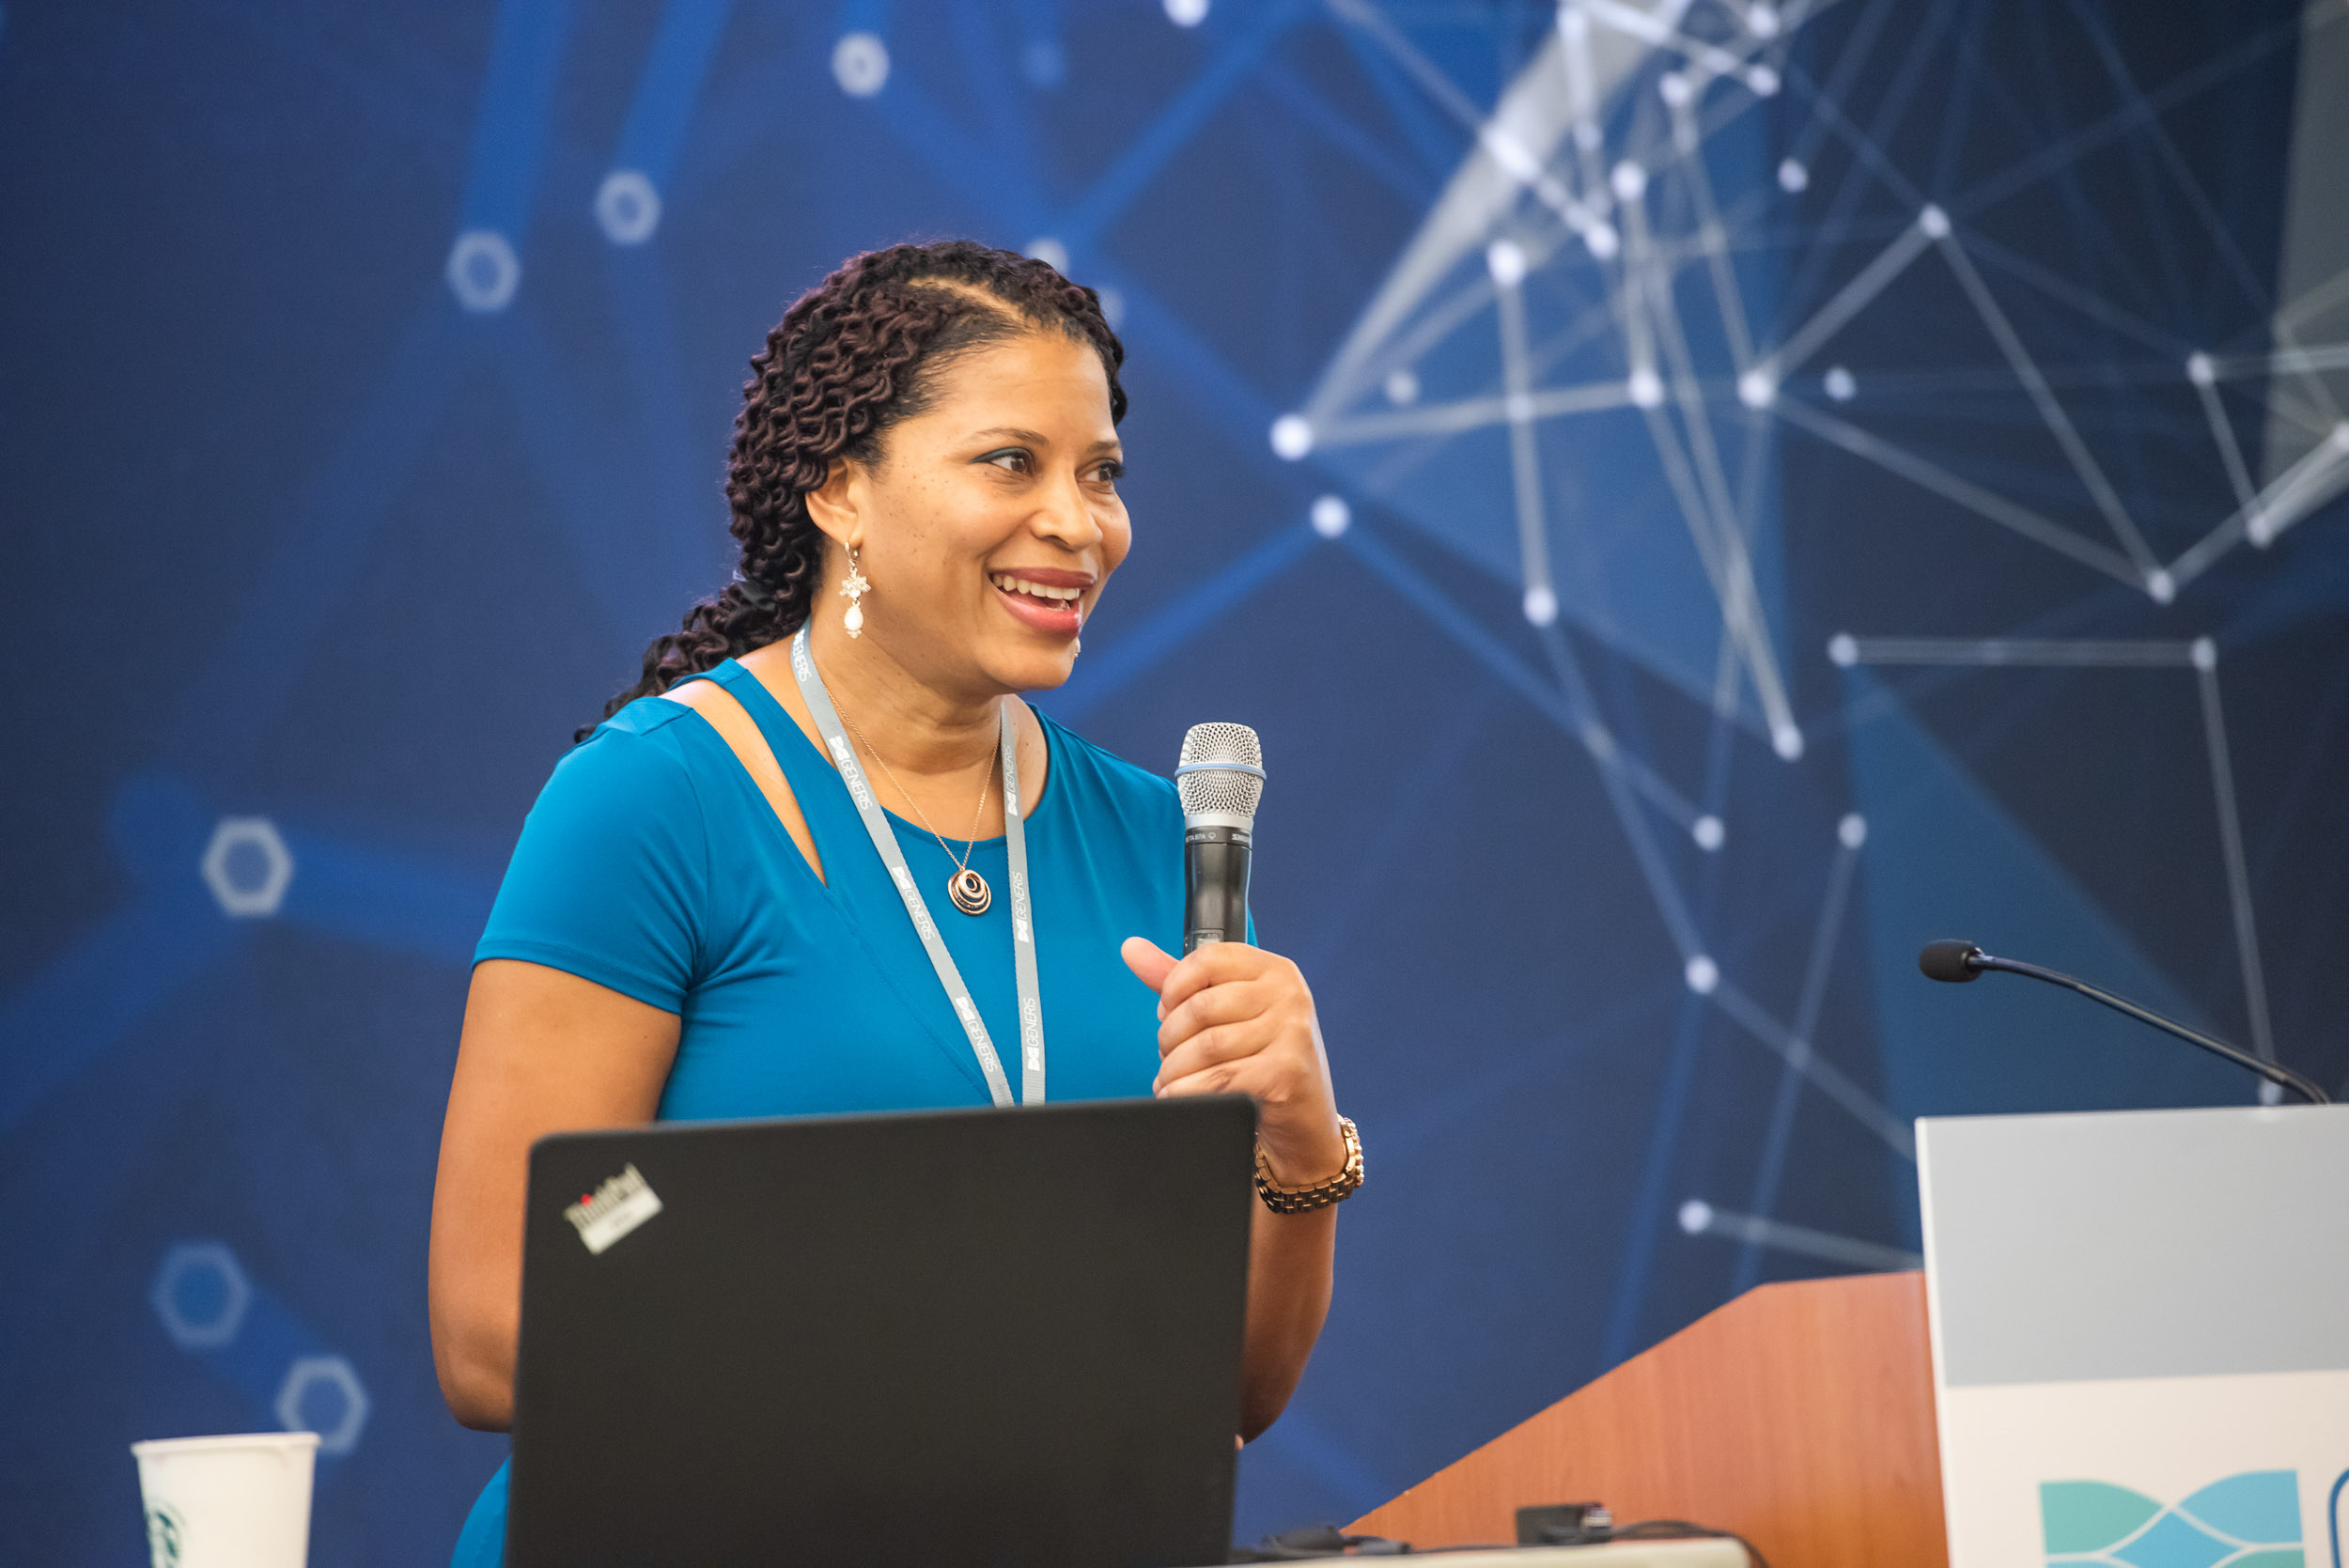 181024 - American Medical Device Summit - mark campbell photography-283_Resized_Resized.jpg